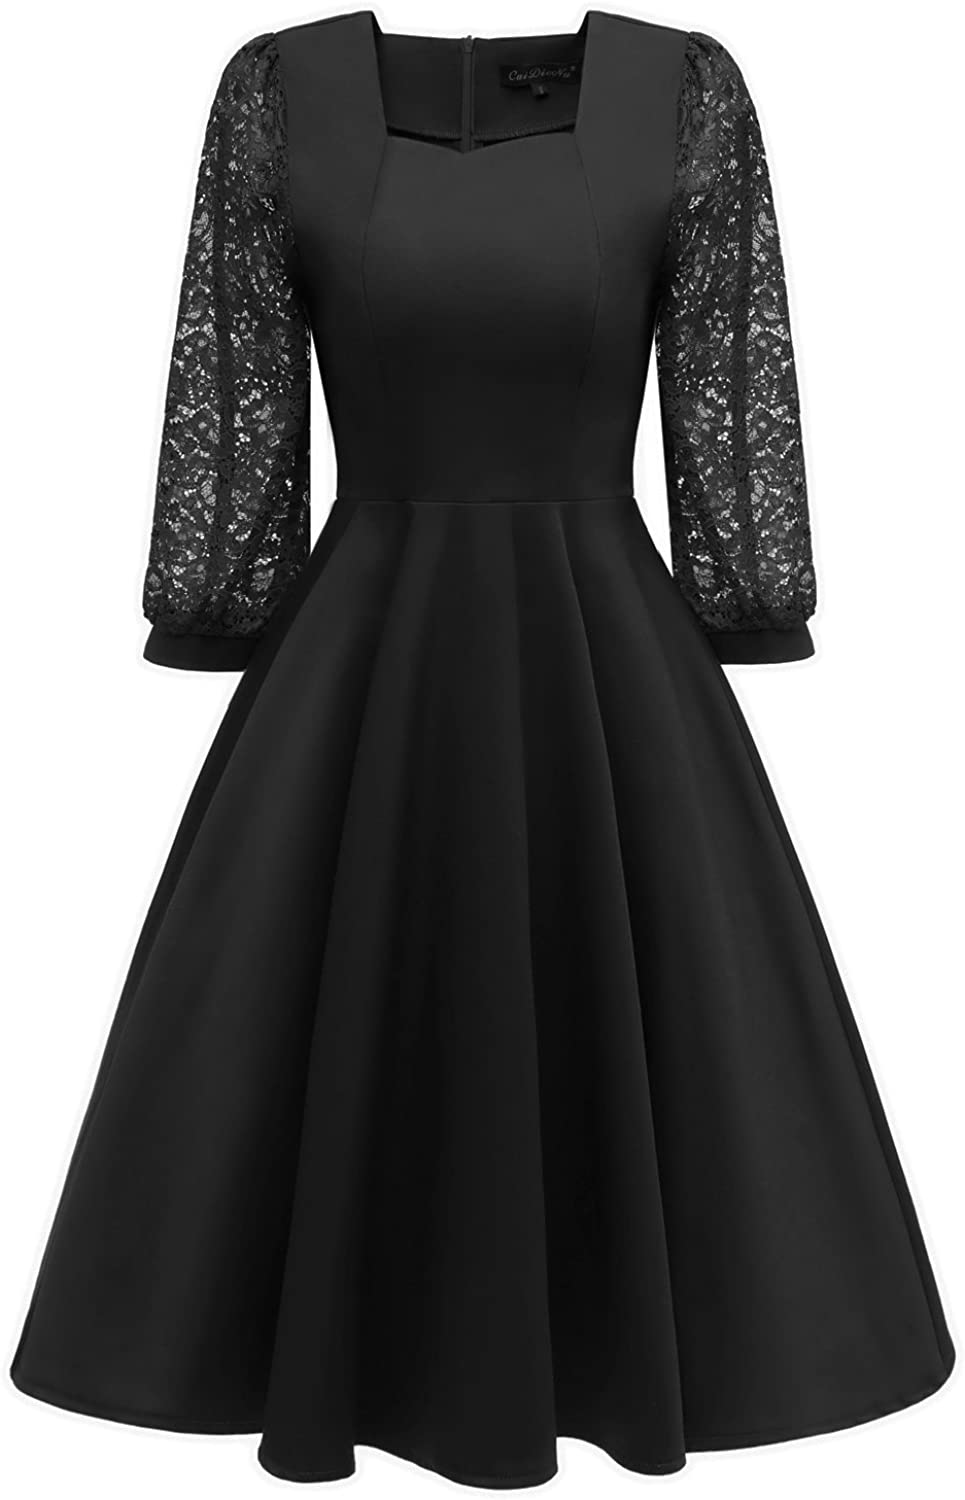 Dress Women's Vintage 1950s Floral Lace 3 4 Sleeve Cocktail Party Dress